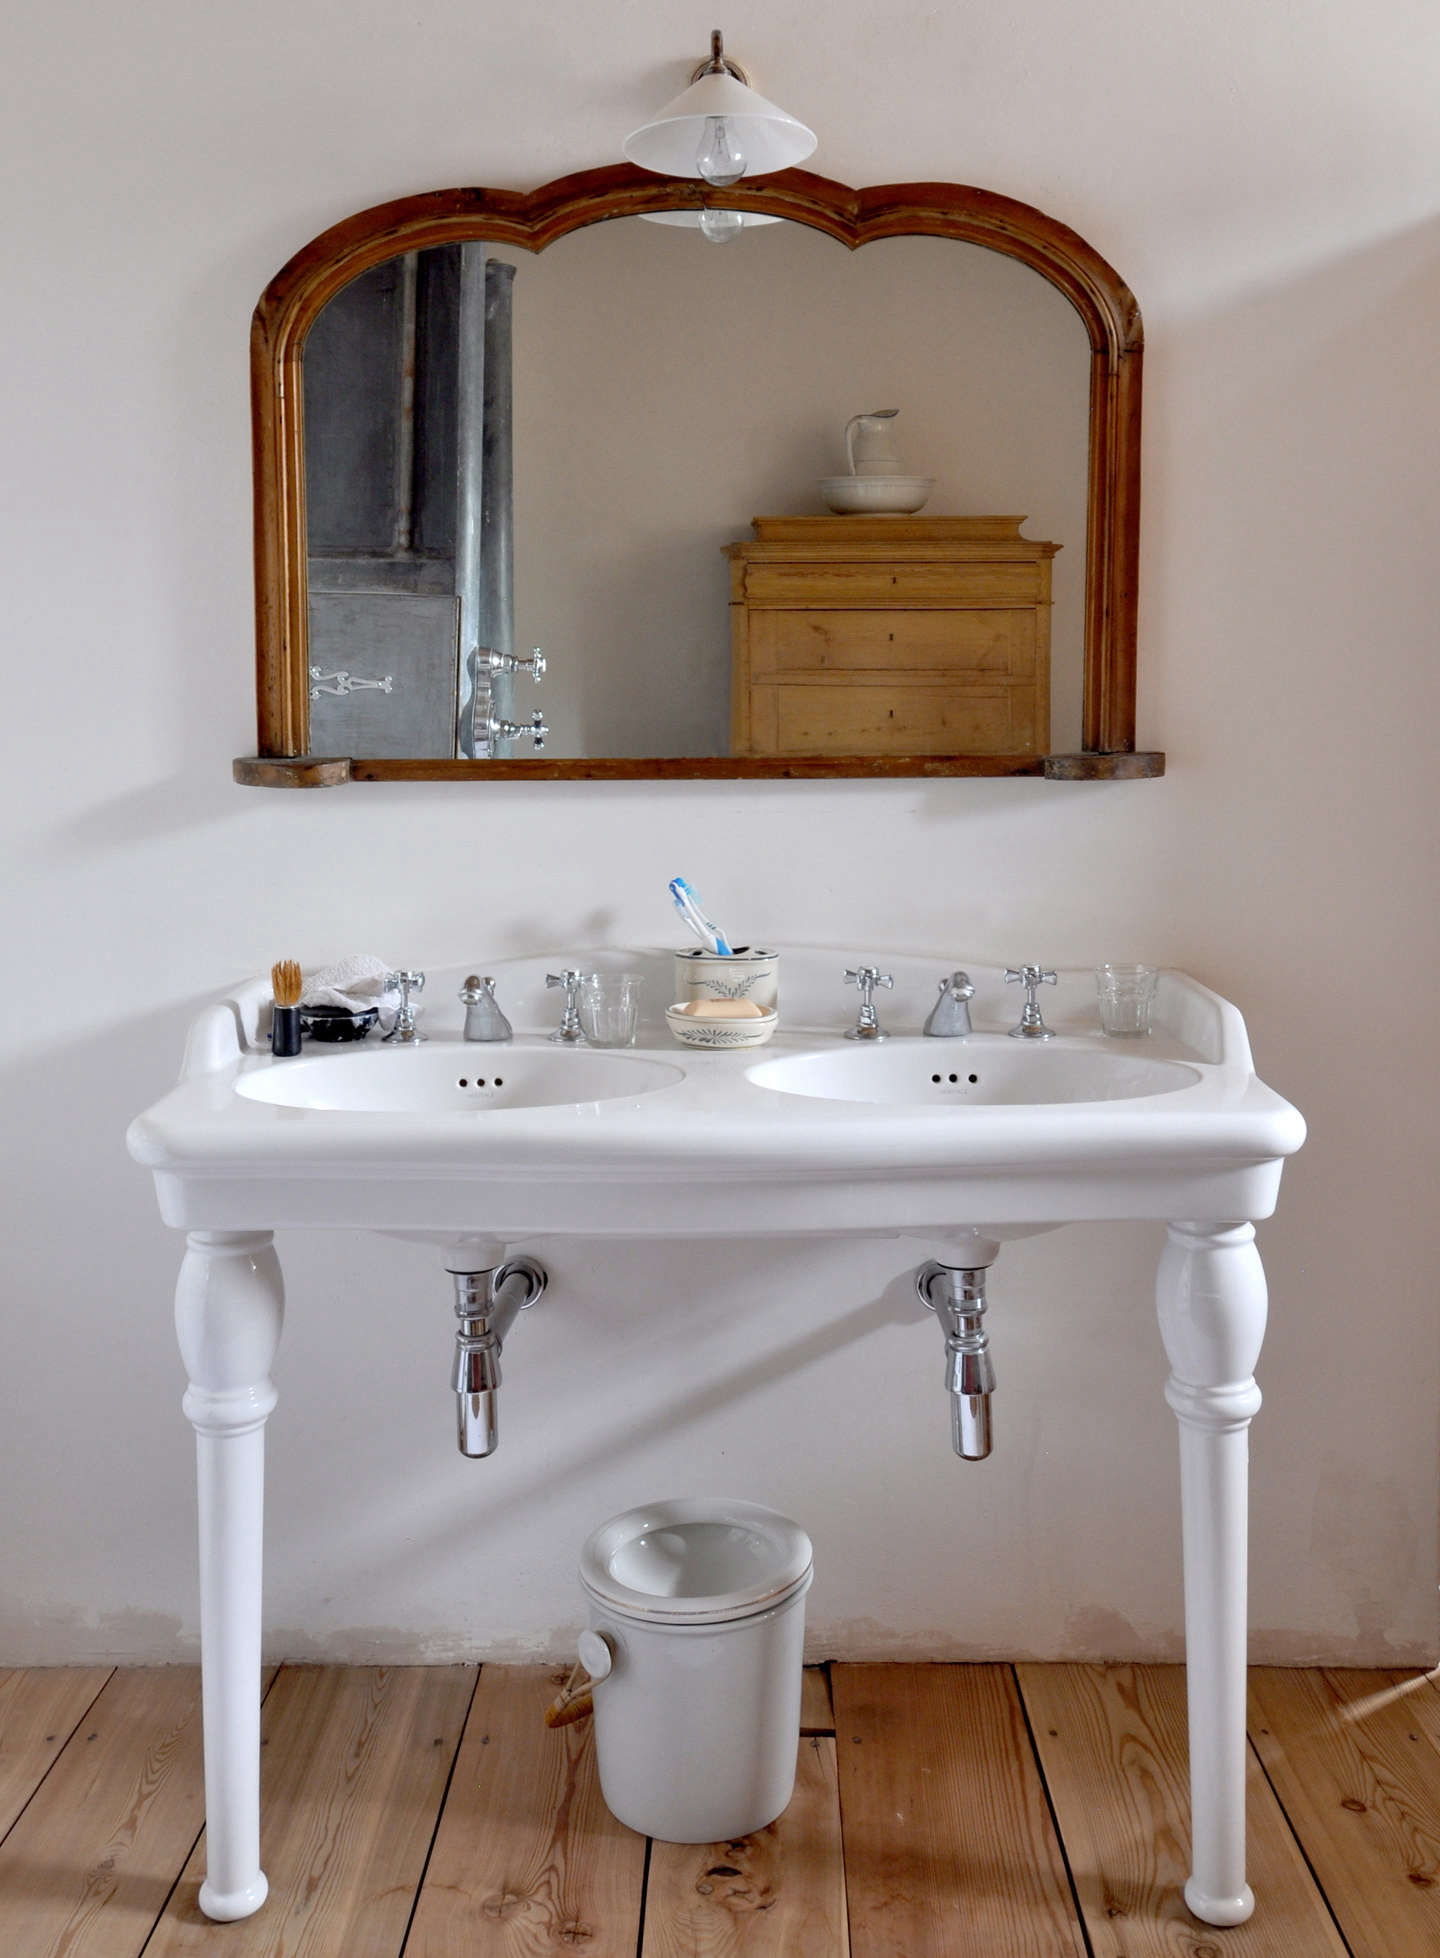 An antique double-sink vanity in the bath.